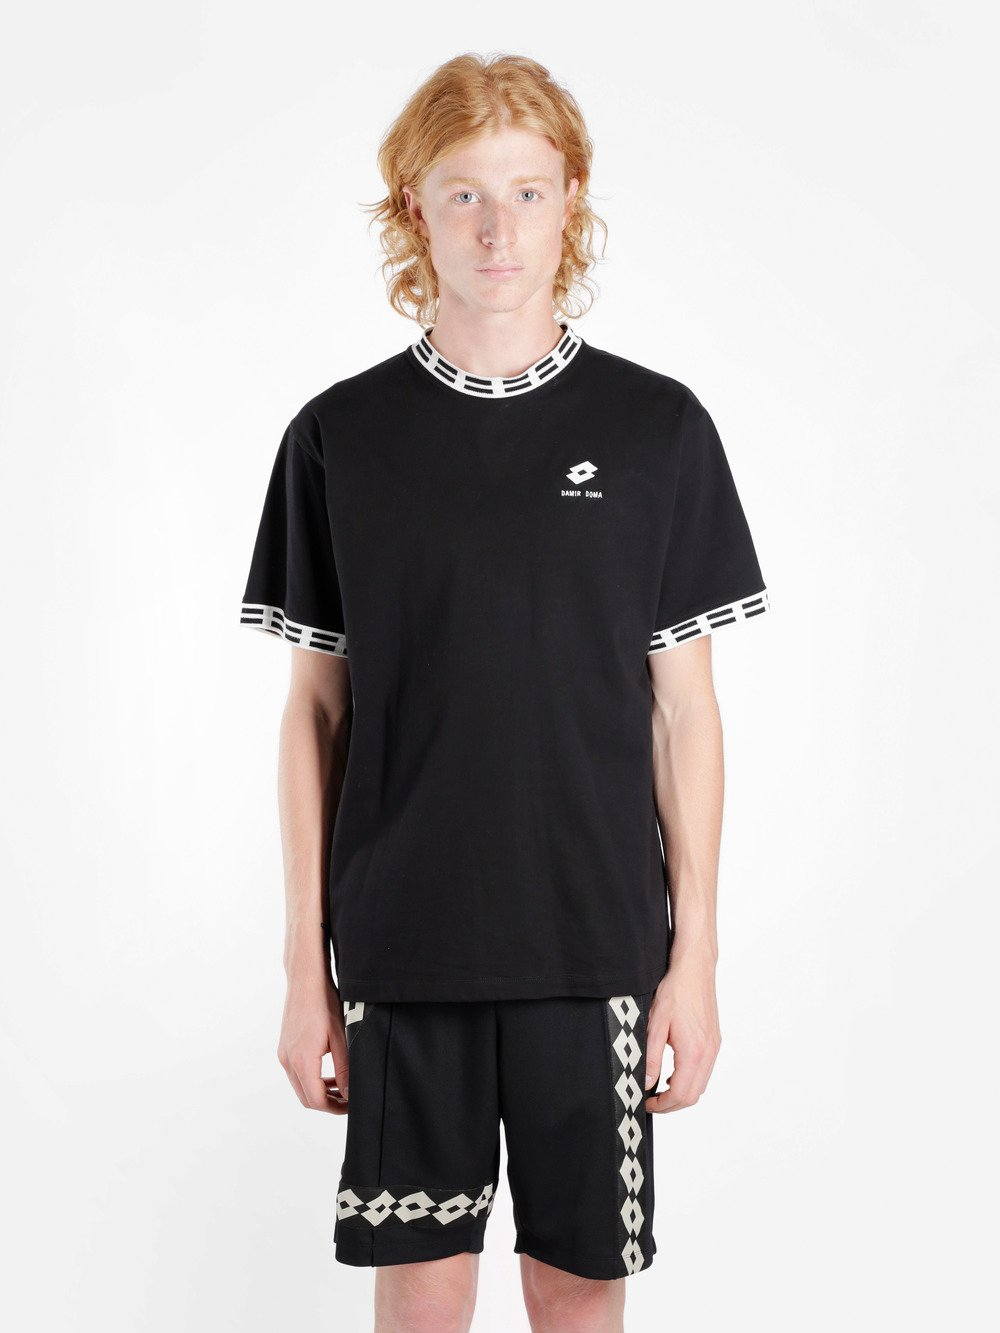 DAMIR DOMA Lotto Cotton Jersey T-Shirt in Black